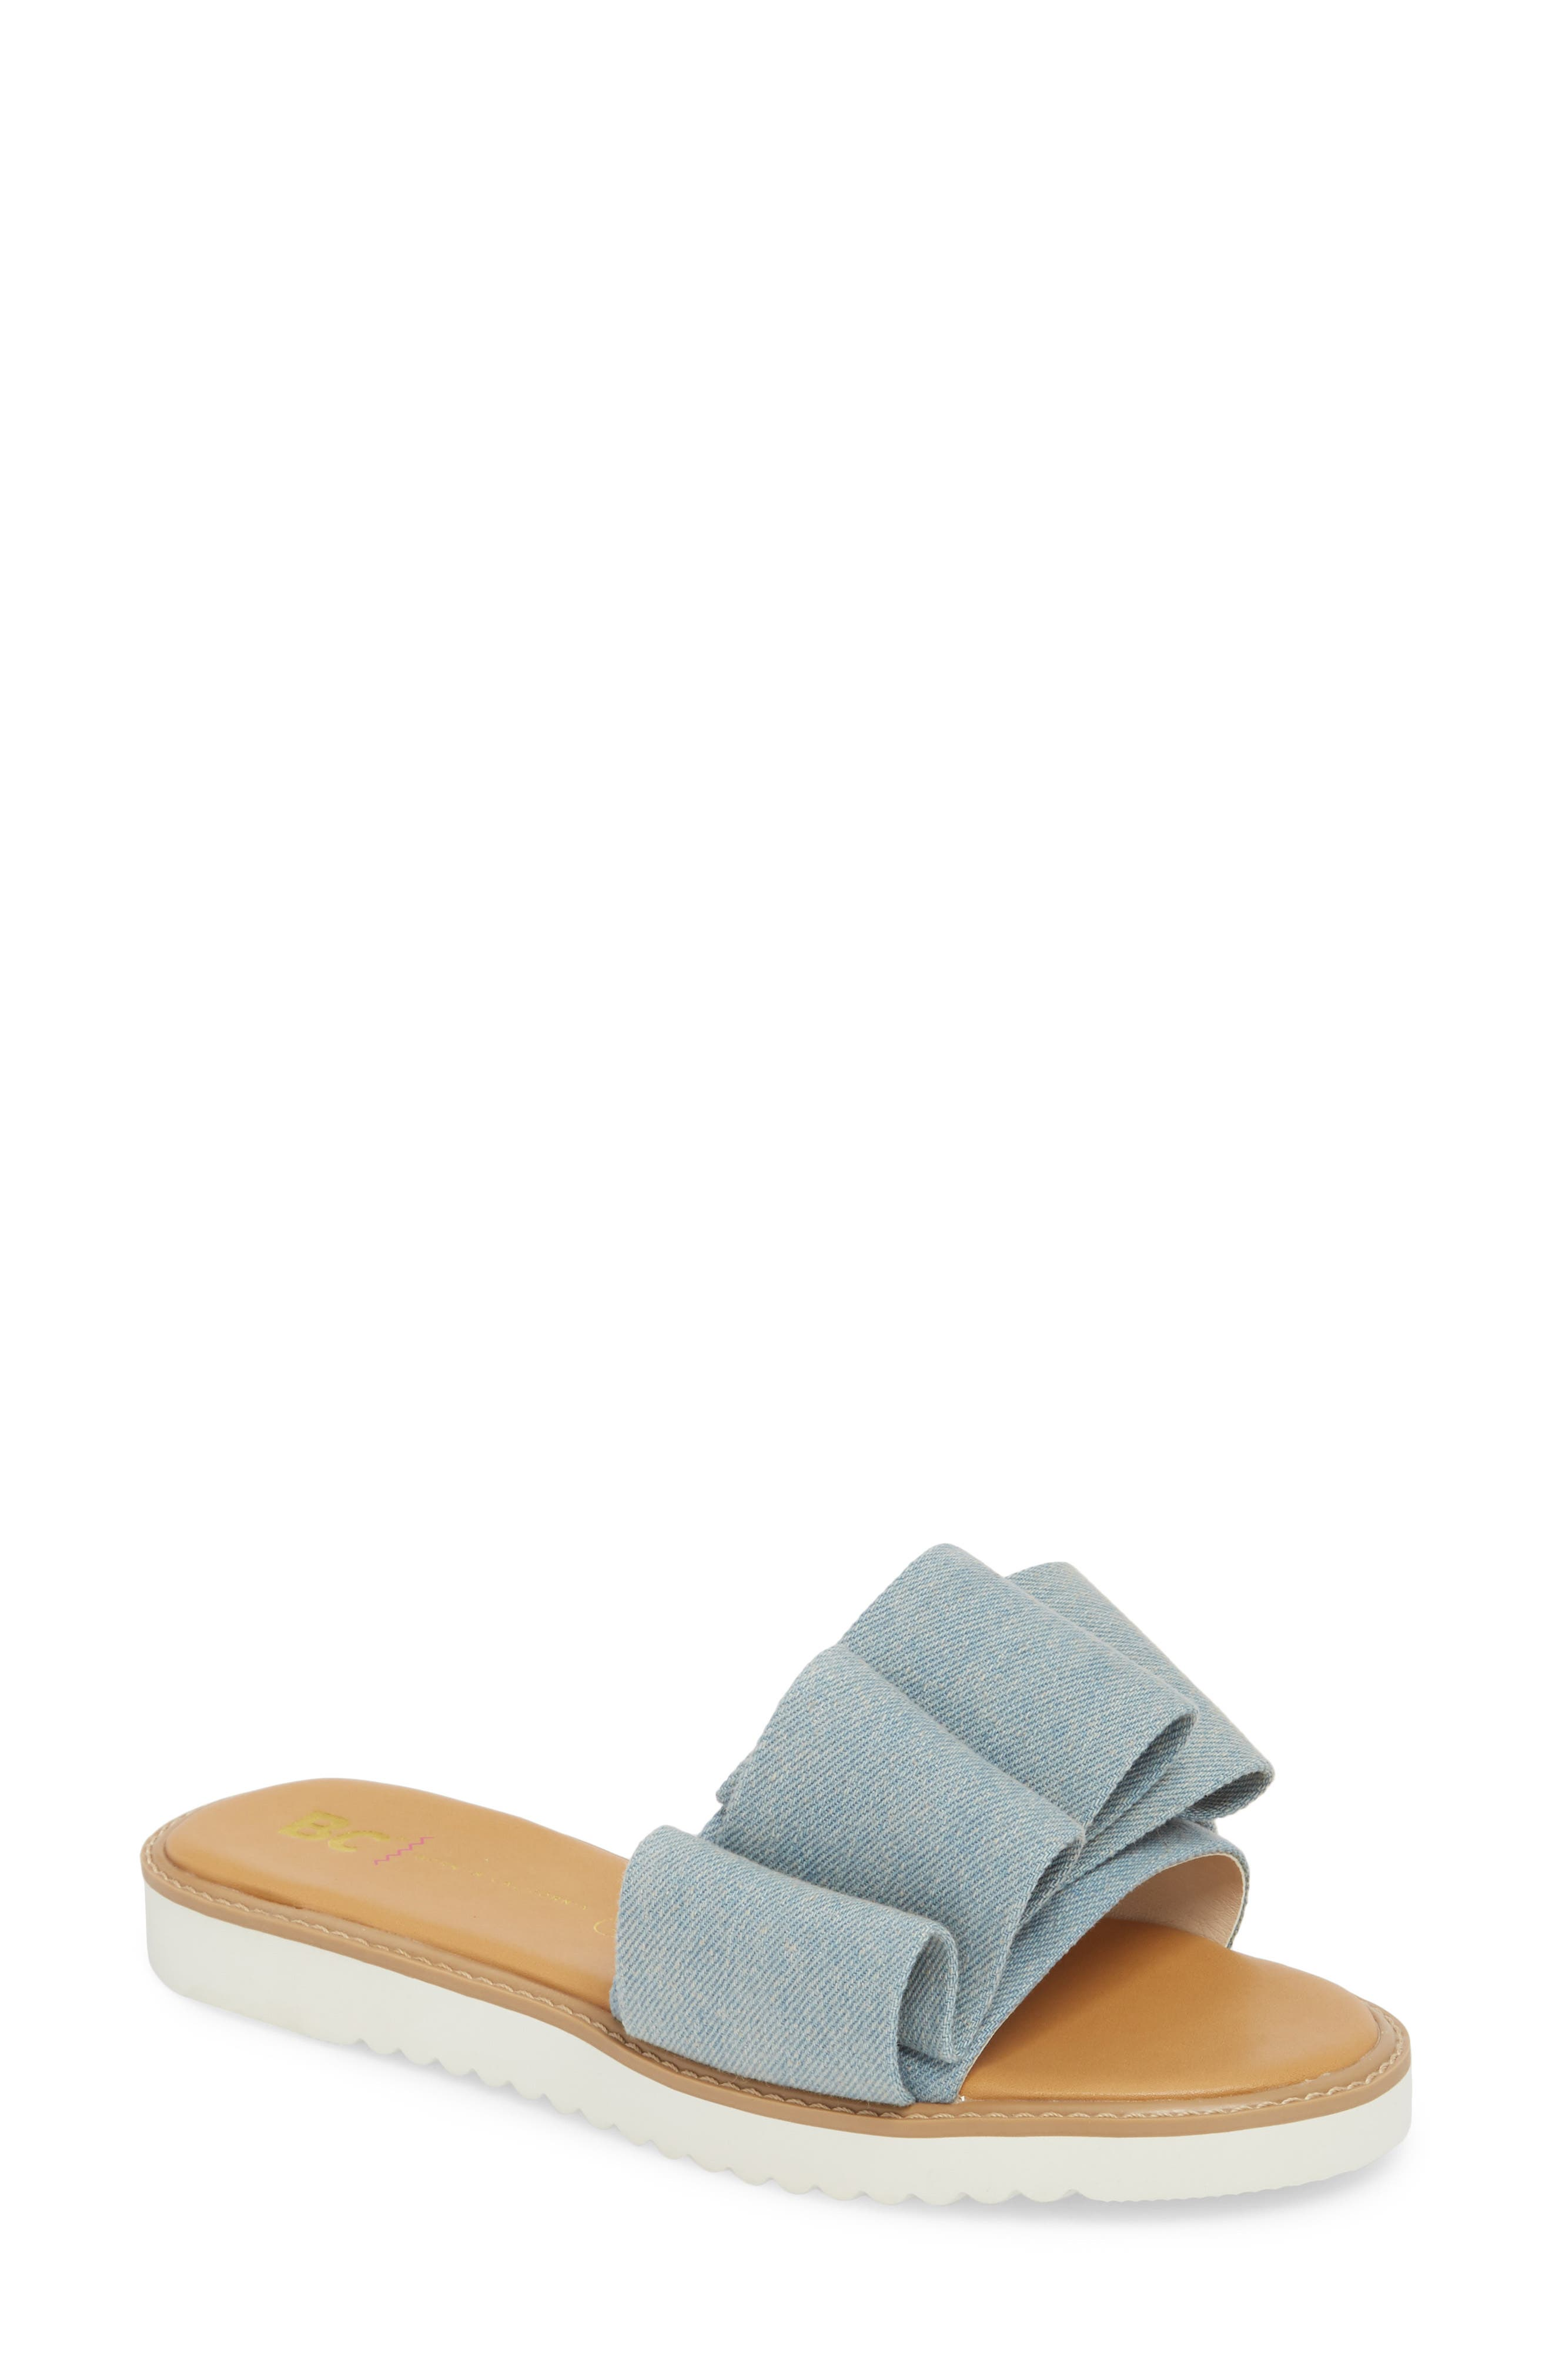 Fun for All Ages Pleated Sandal,                             Main thumbnail 1, color,                             Light Blue Denim